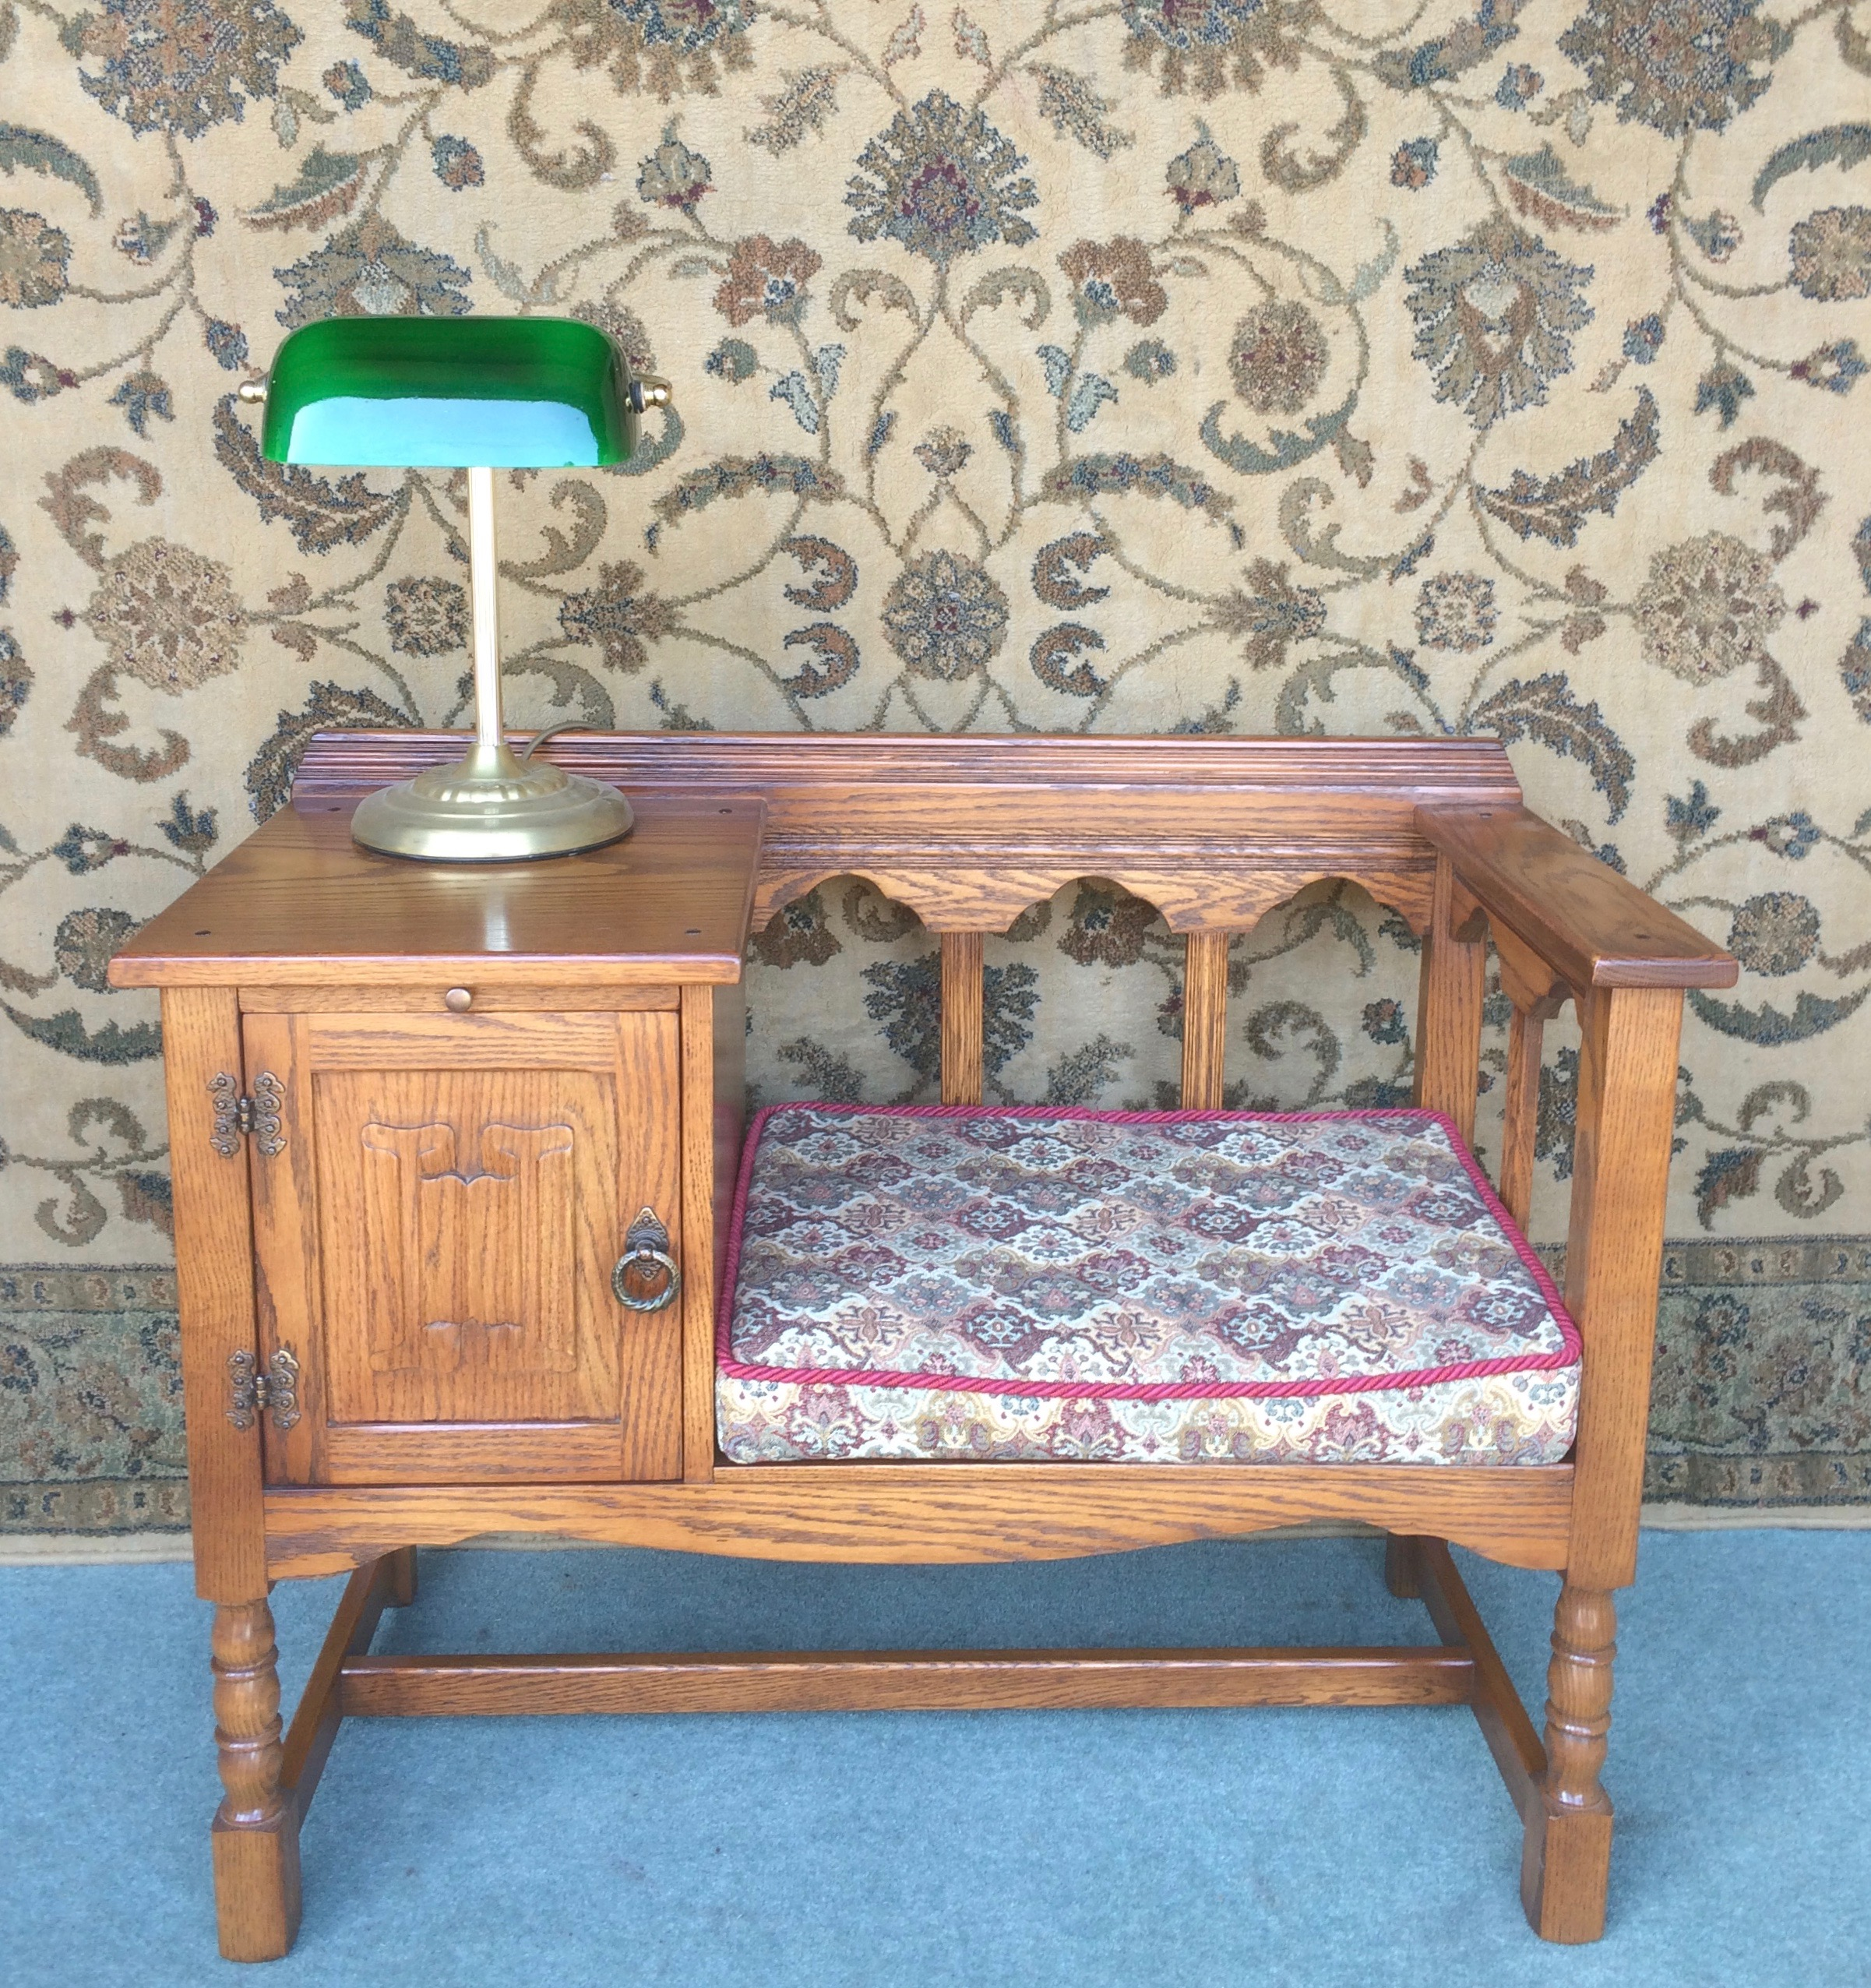 Items For Sale Judlingtons House Clearance In Maldon